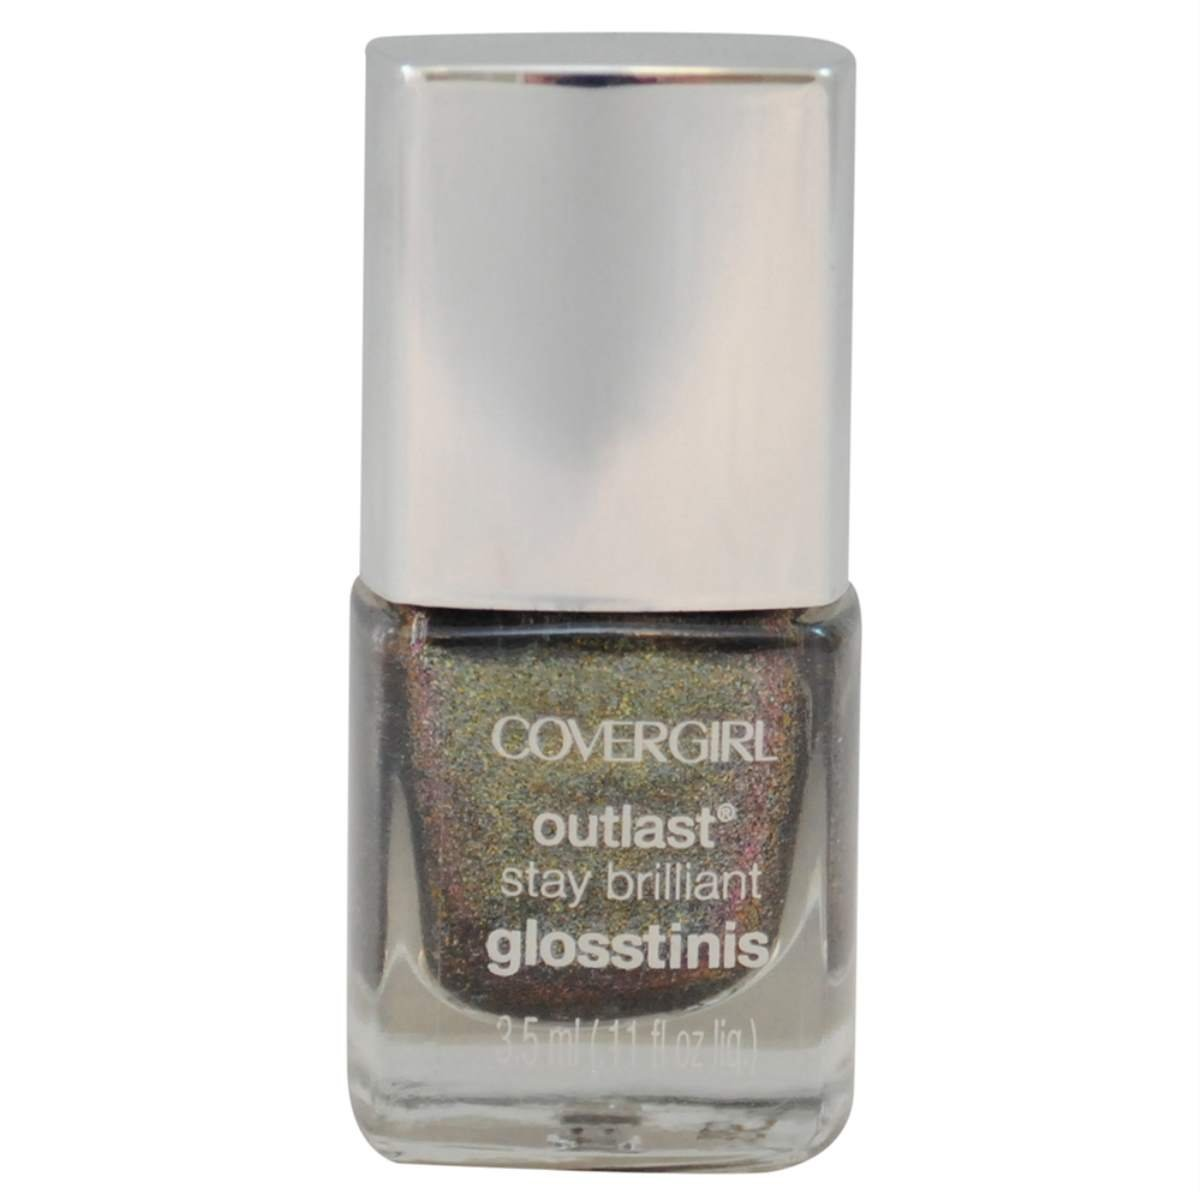 Covergirl Capitol Collection Glosstinis For Catching: Covergirl Outlast Stay Brilliant Glosstinis Nail Polish